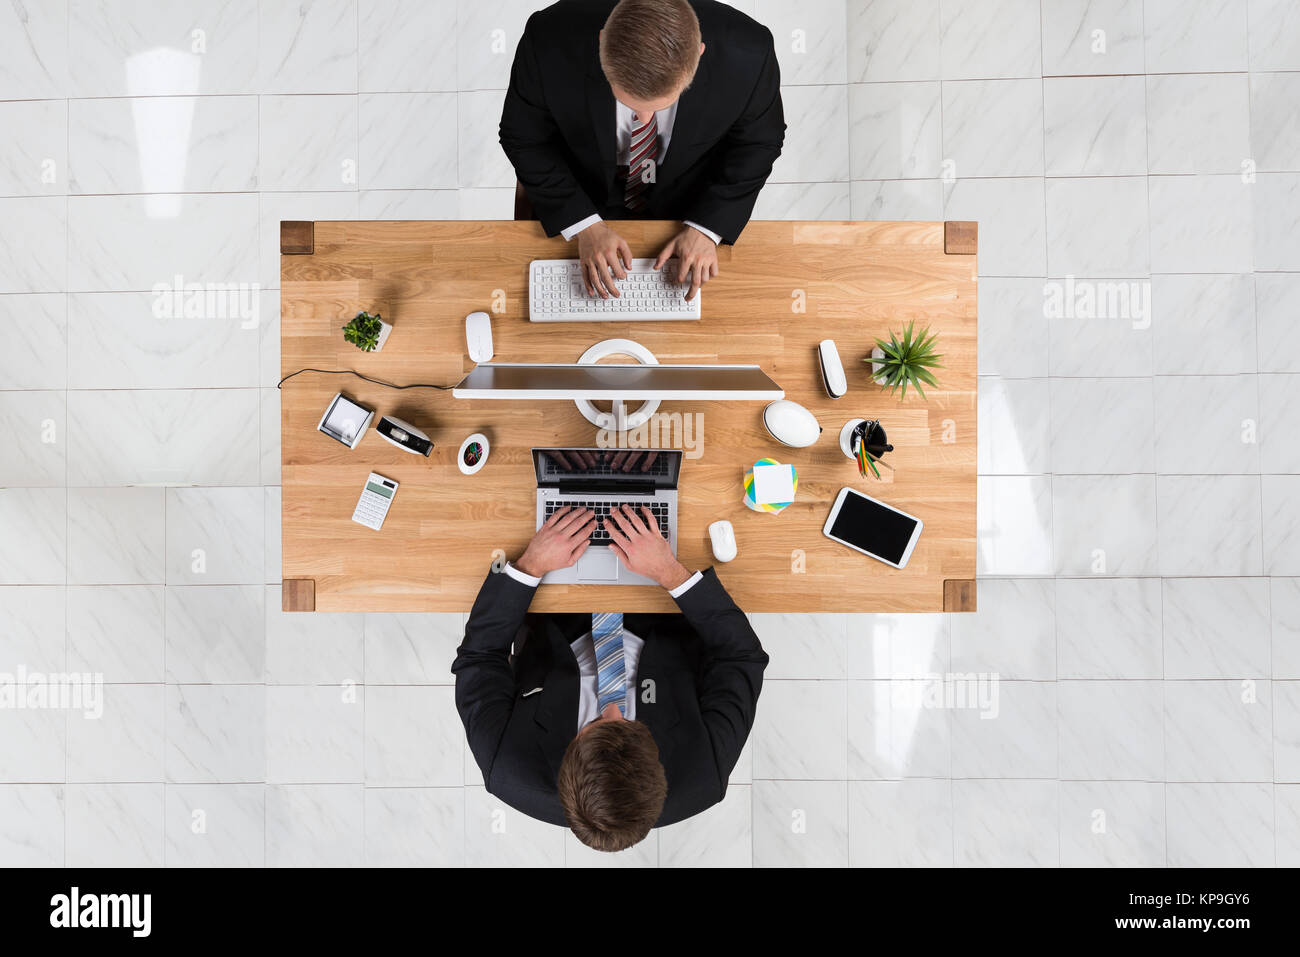 Businessmen Using Laptop And Computer At Desk In Office - Stock Image